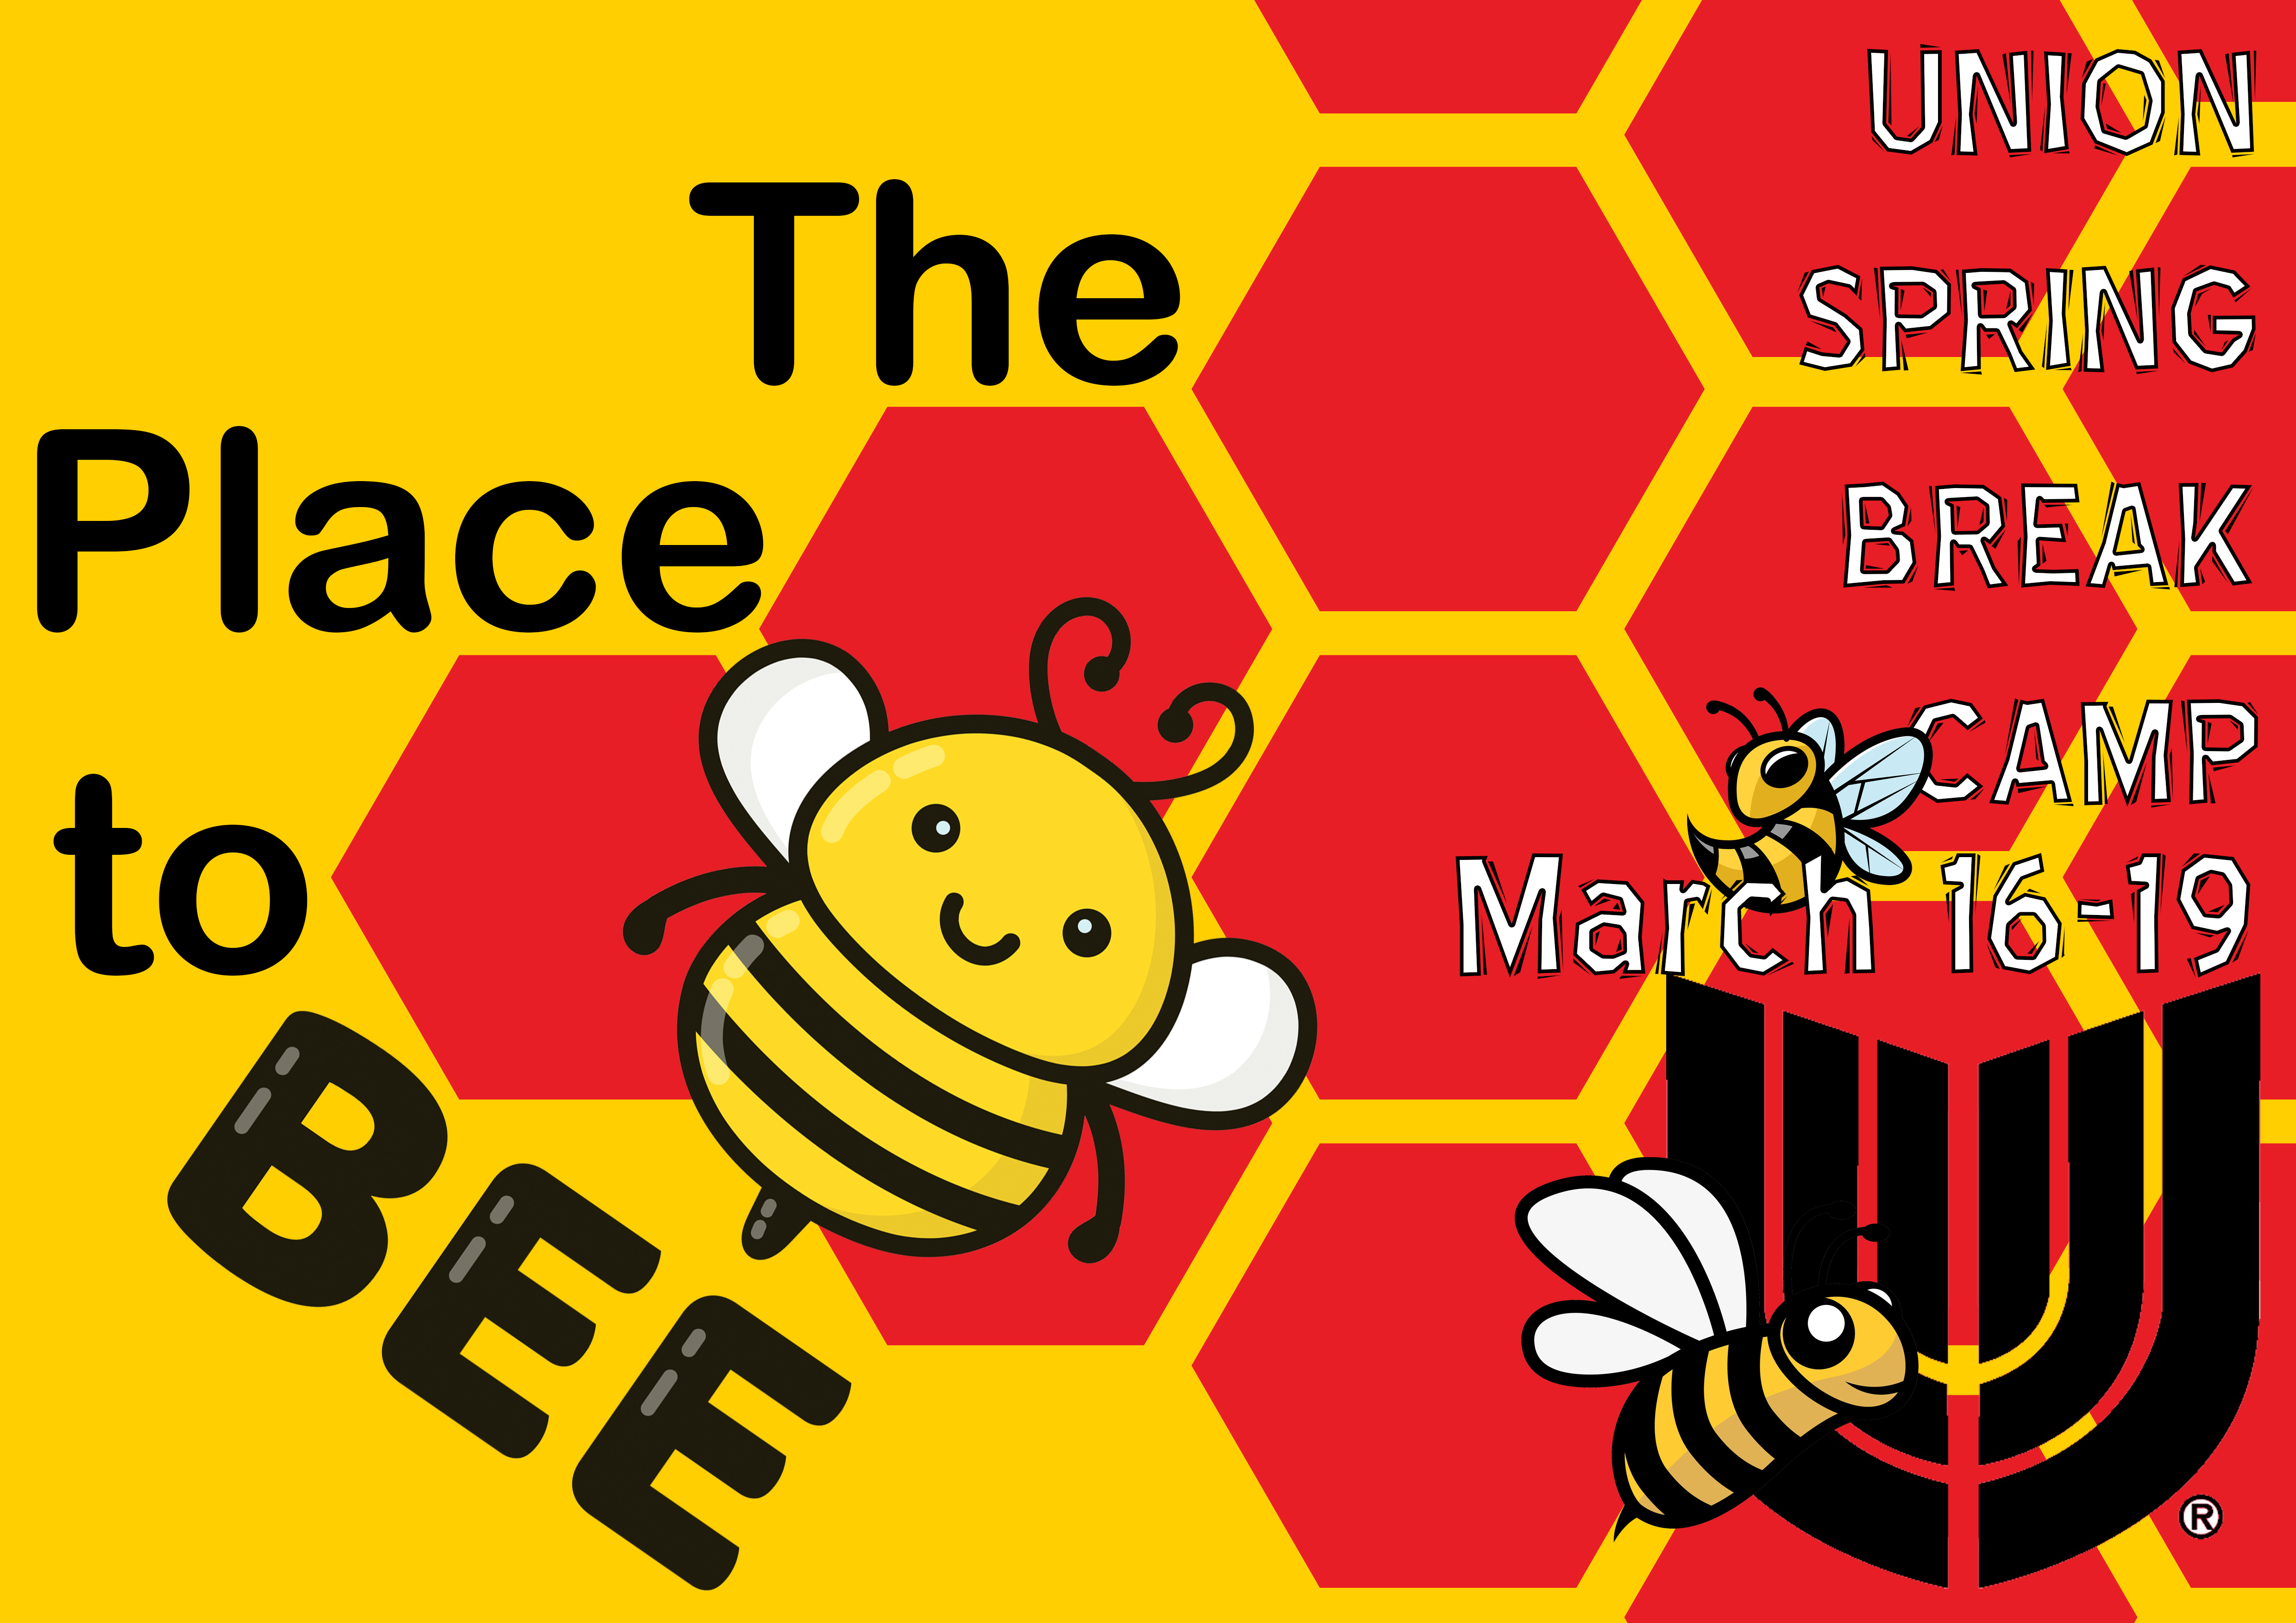 """The Union Extended Day Program Spring Break Camp will be March 16-19 at Jefferson Elementary School, 8418 S. 107thE. Ave. This year's theme is """"The Place to Bee."""" Union will accept enrollment for spring break camp until 5 p.m. Thursday, March5."""